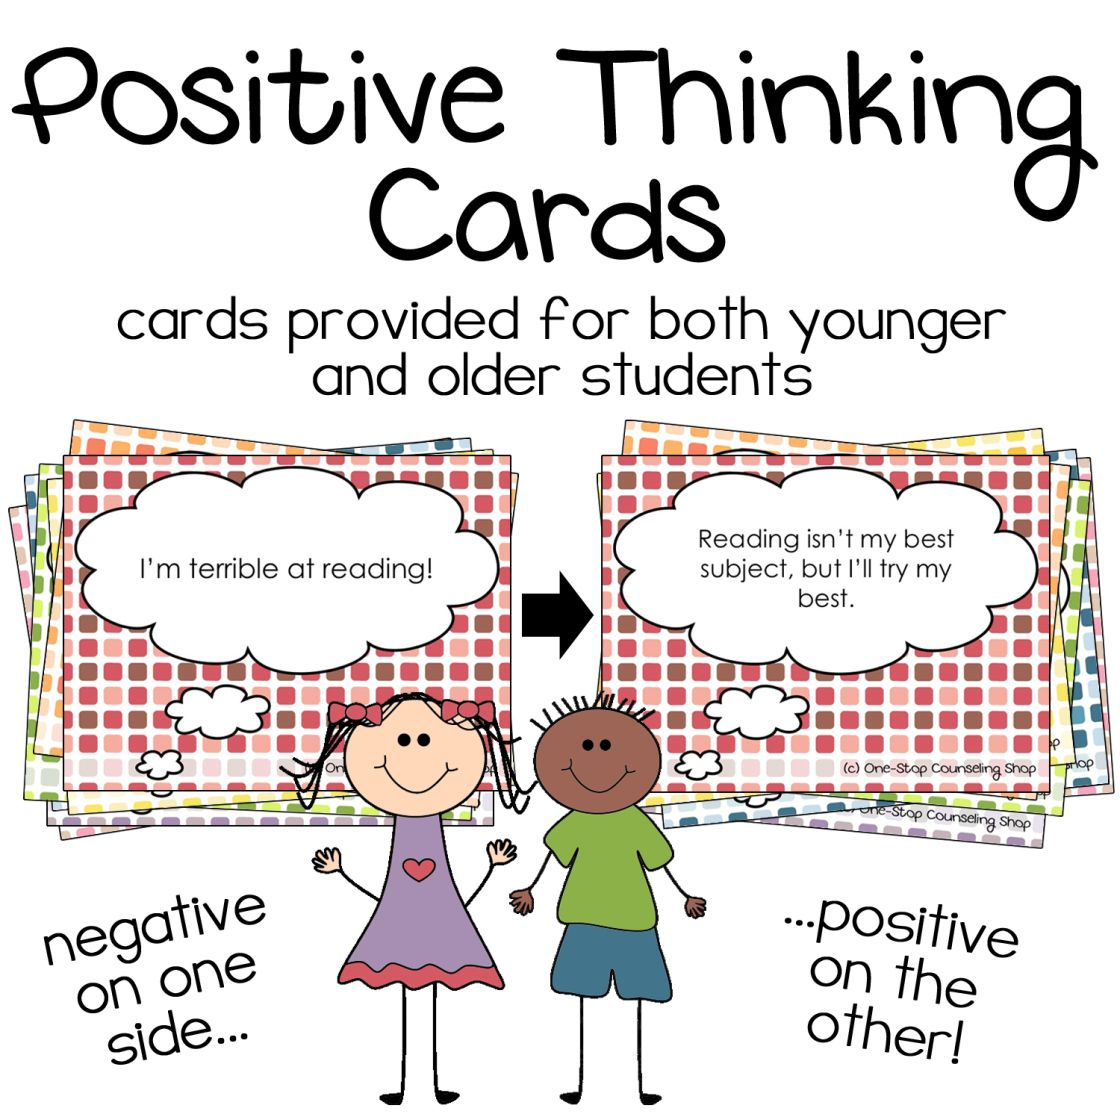 7 Tips to Encourage a Positive Attitude in Students